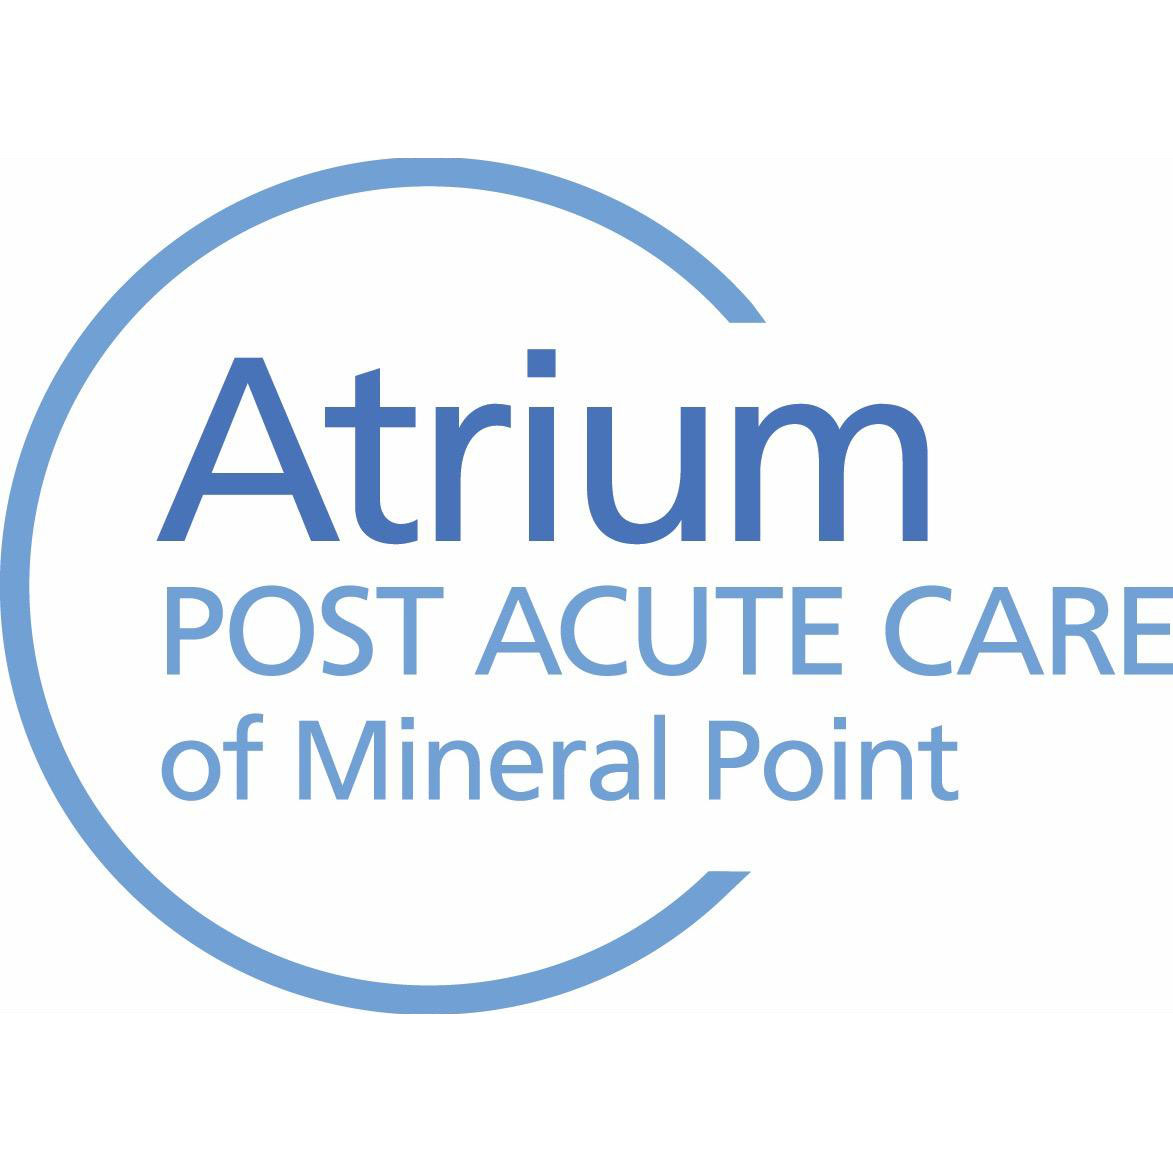 Atrium Post Acute Care of Mineral Point - Mineral Point, WI - Physical Medicine & Rehab